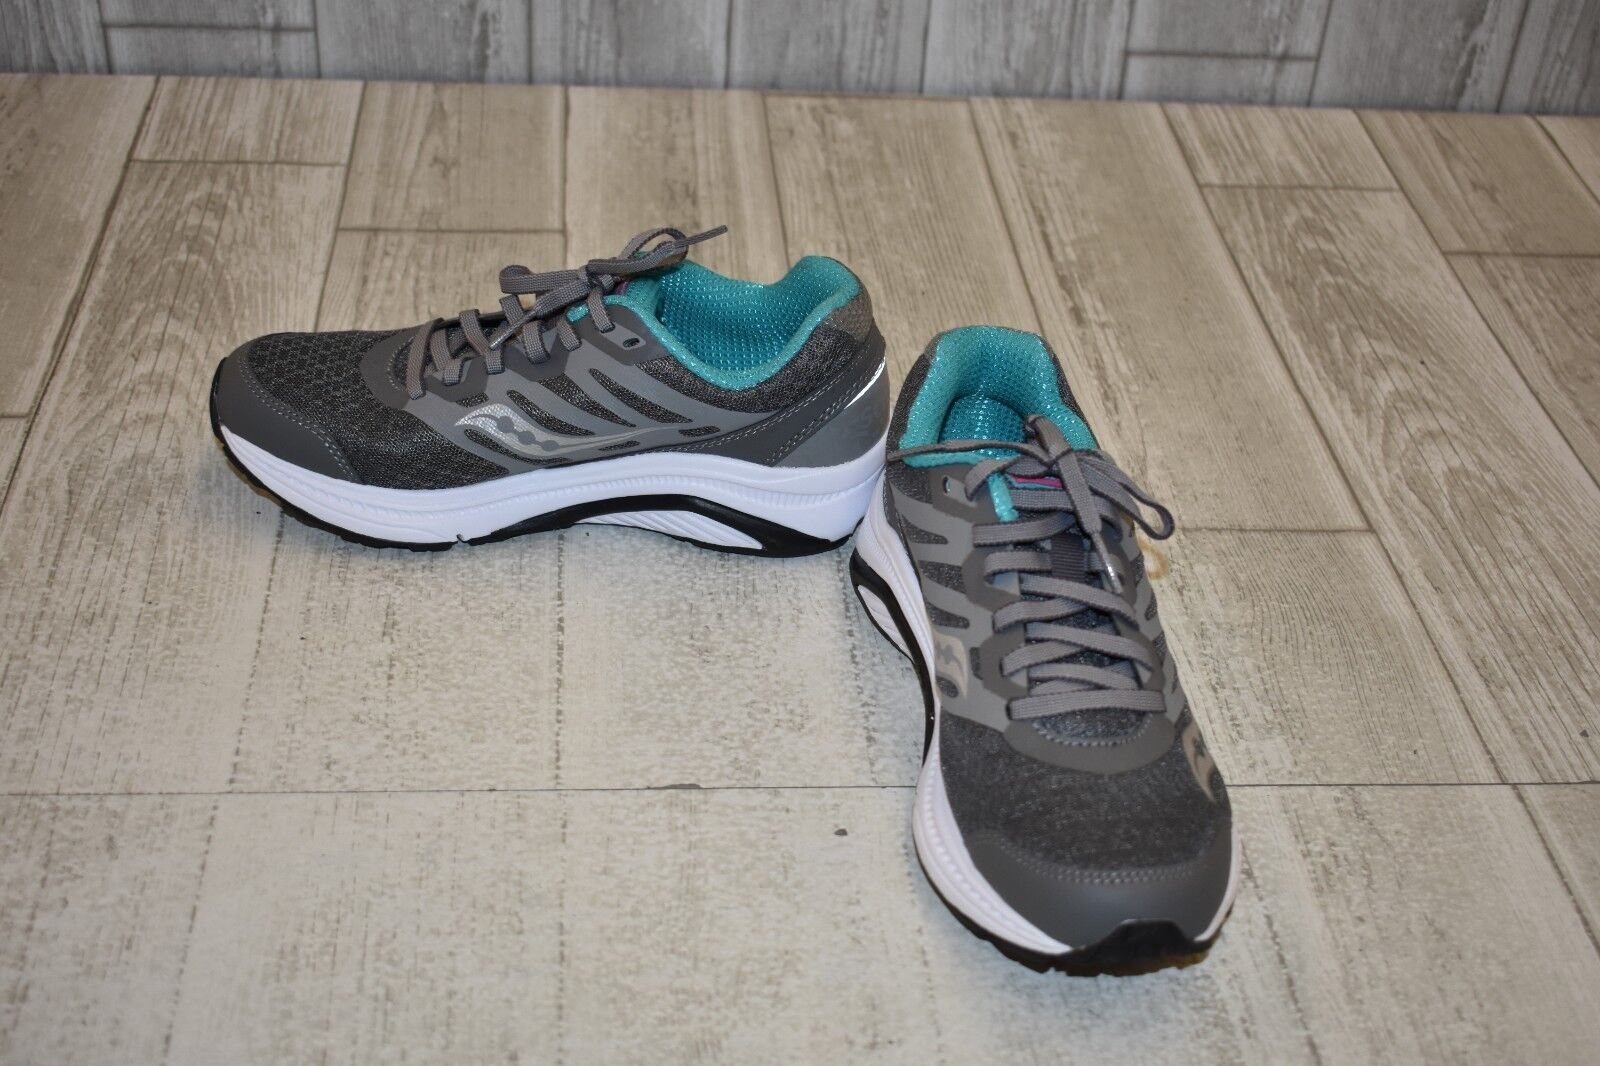 Saucony Powergrid Sneaker, Women's Size 6, Grey Teal